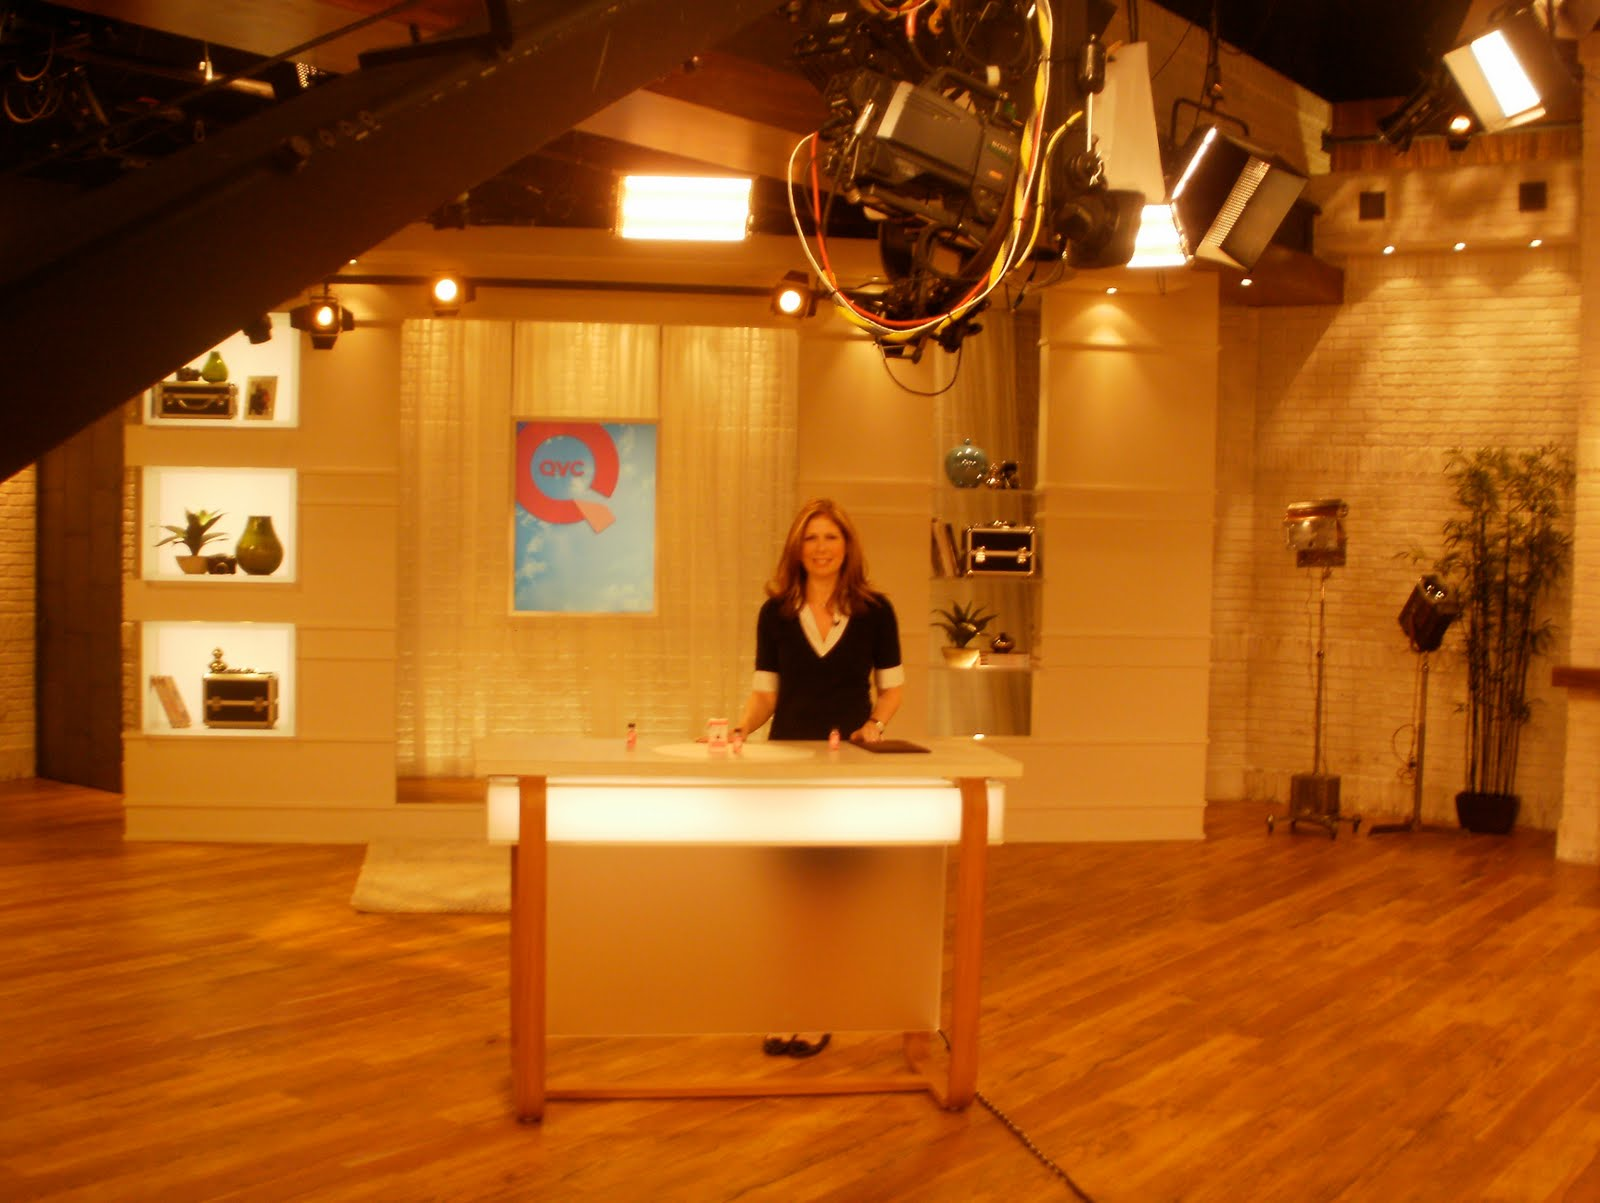 QVC Model Joy http://dakshcrafts.com/home/qvc-model-joy